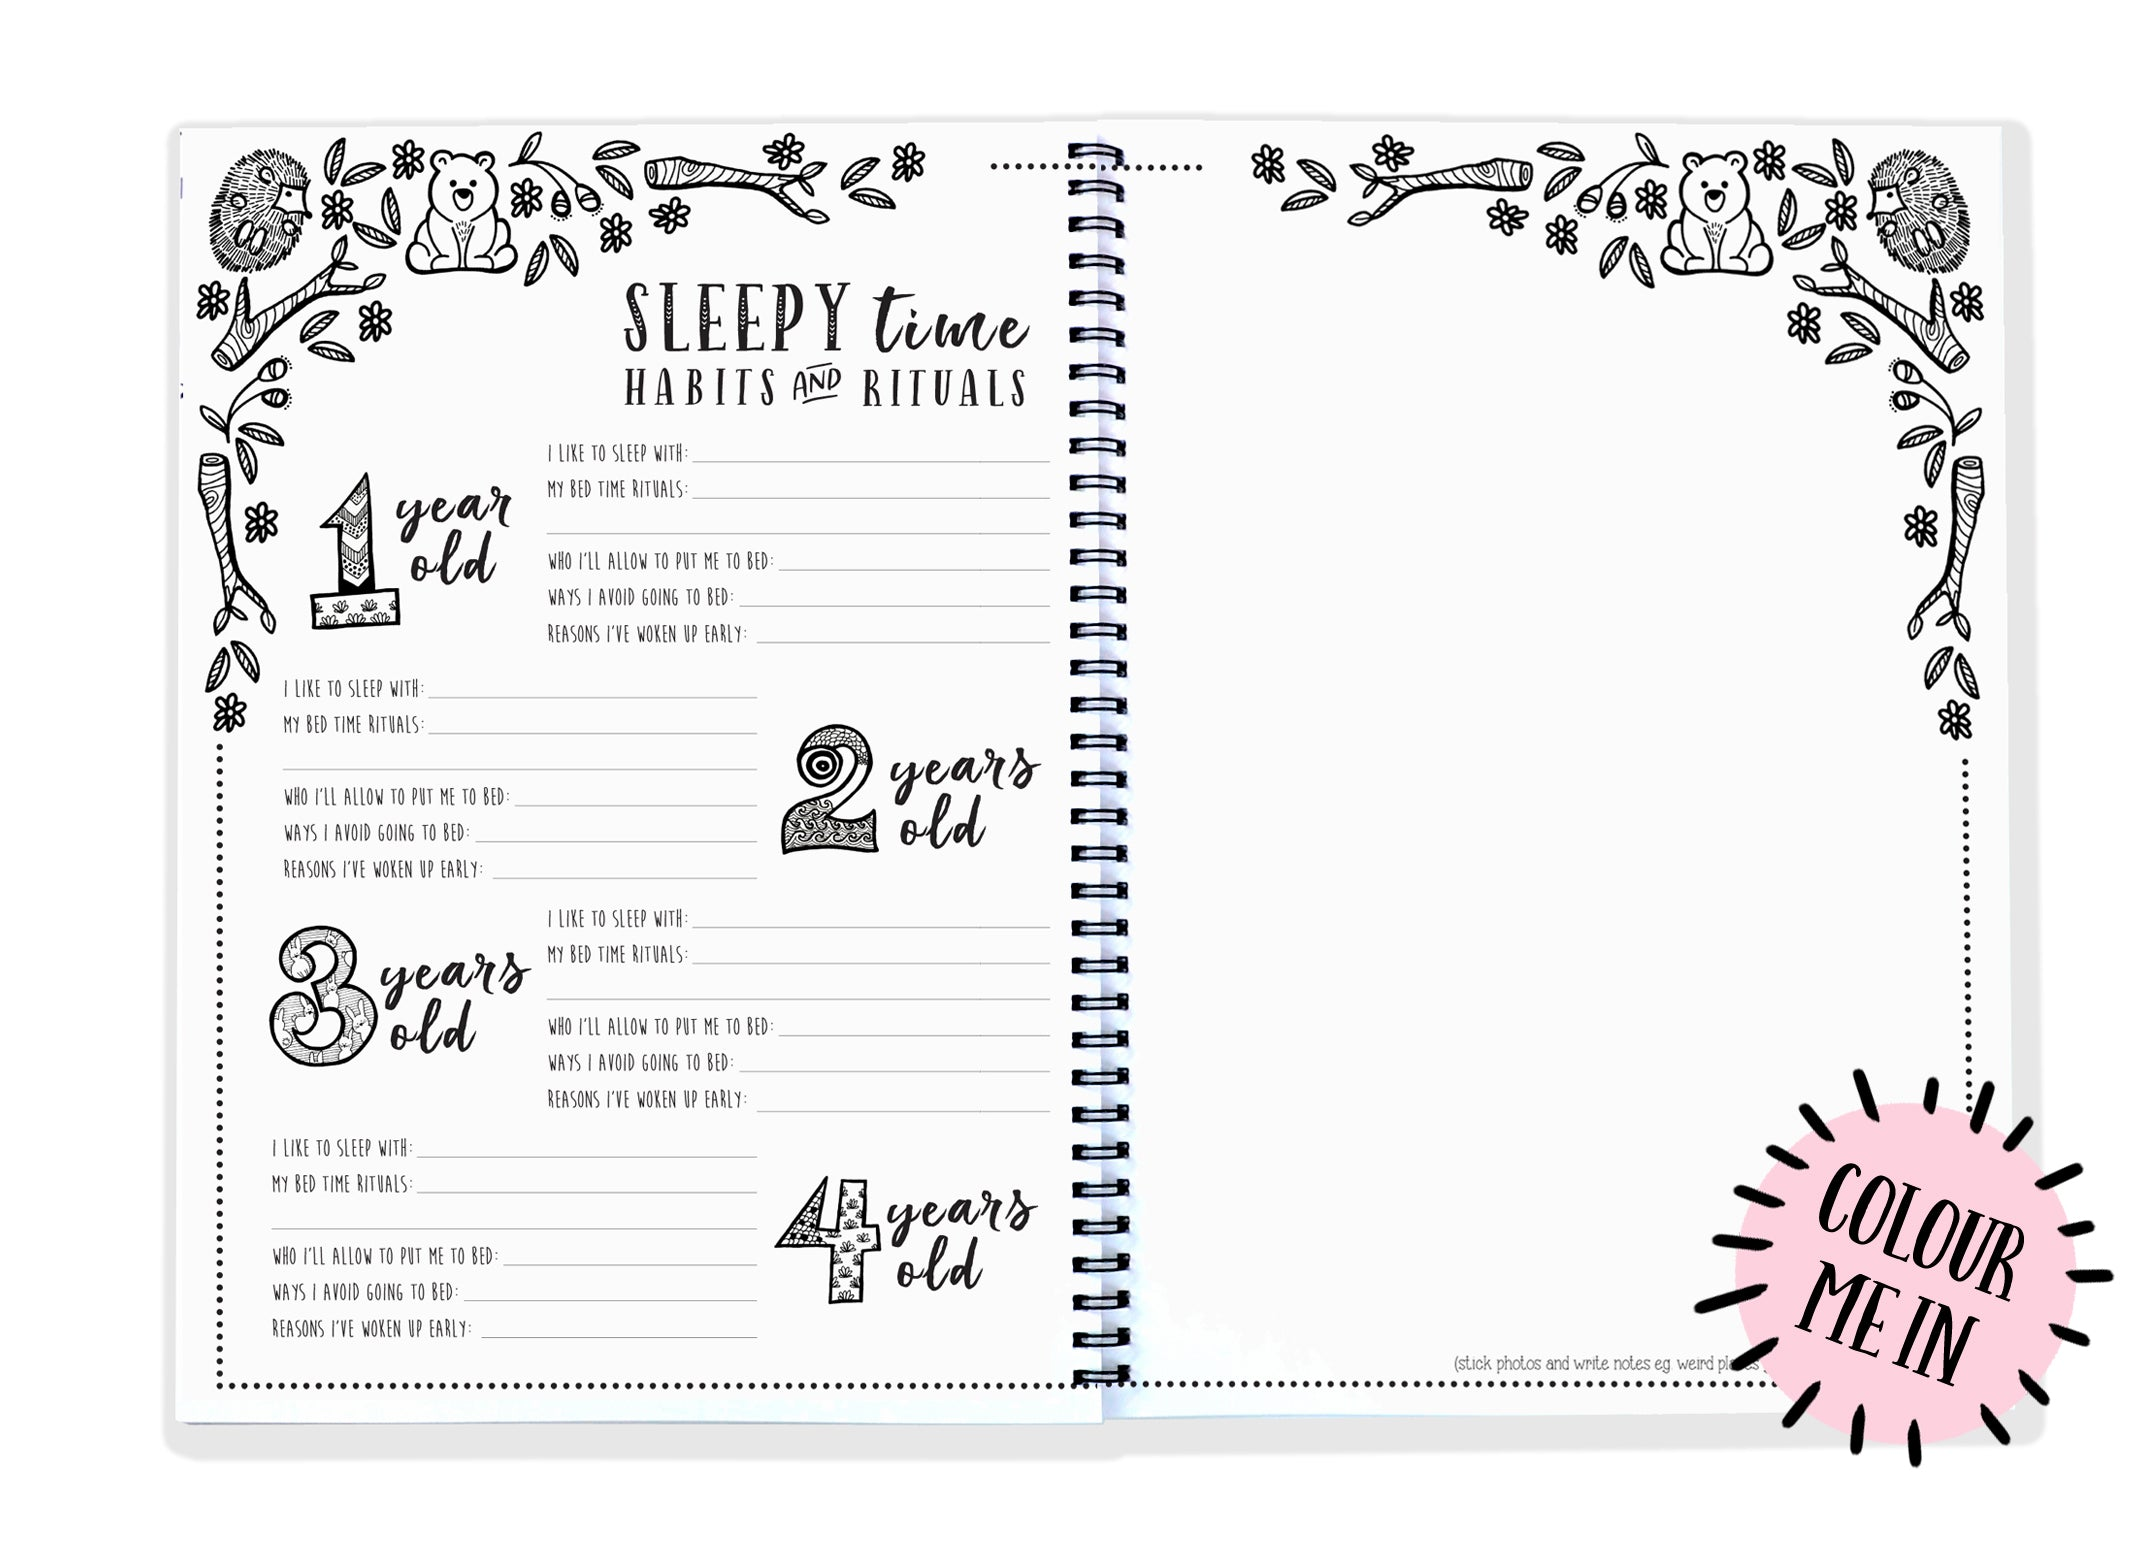 Blueberry Co - The Monochrome Toddler Book